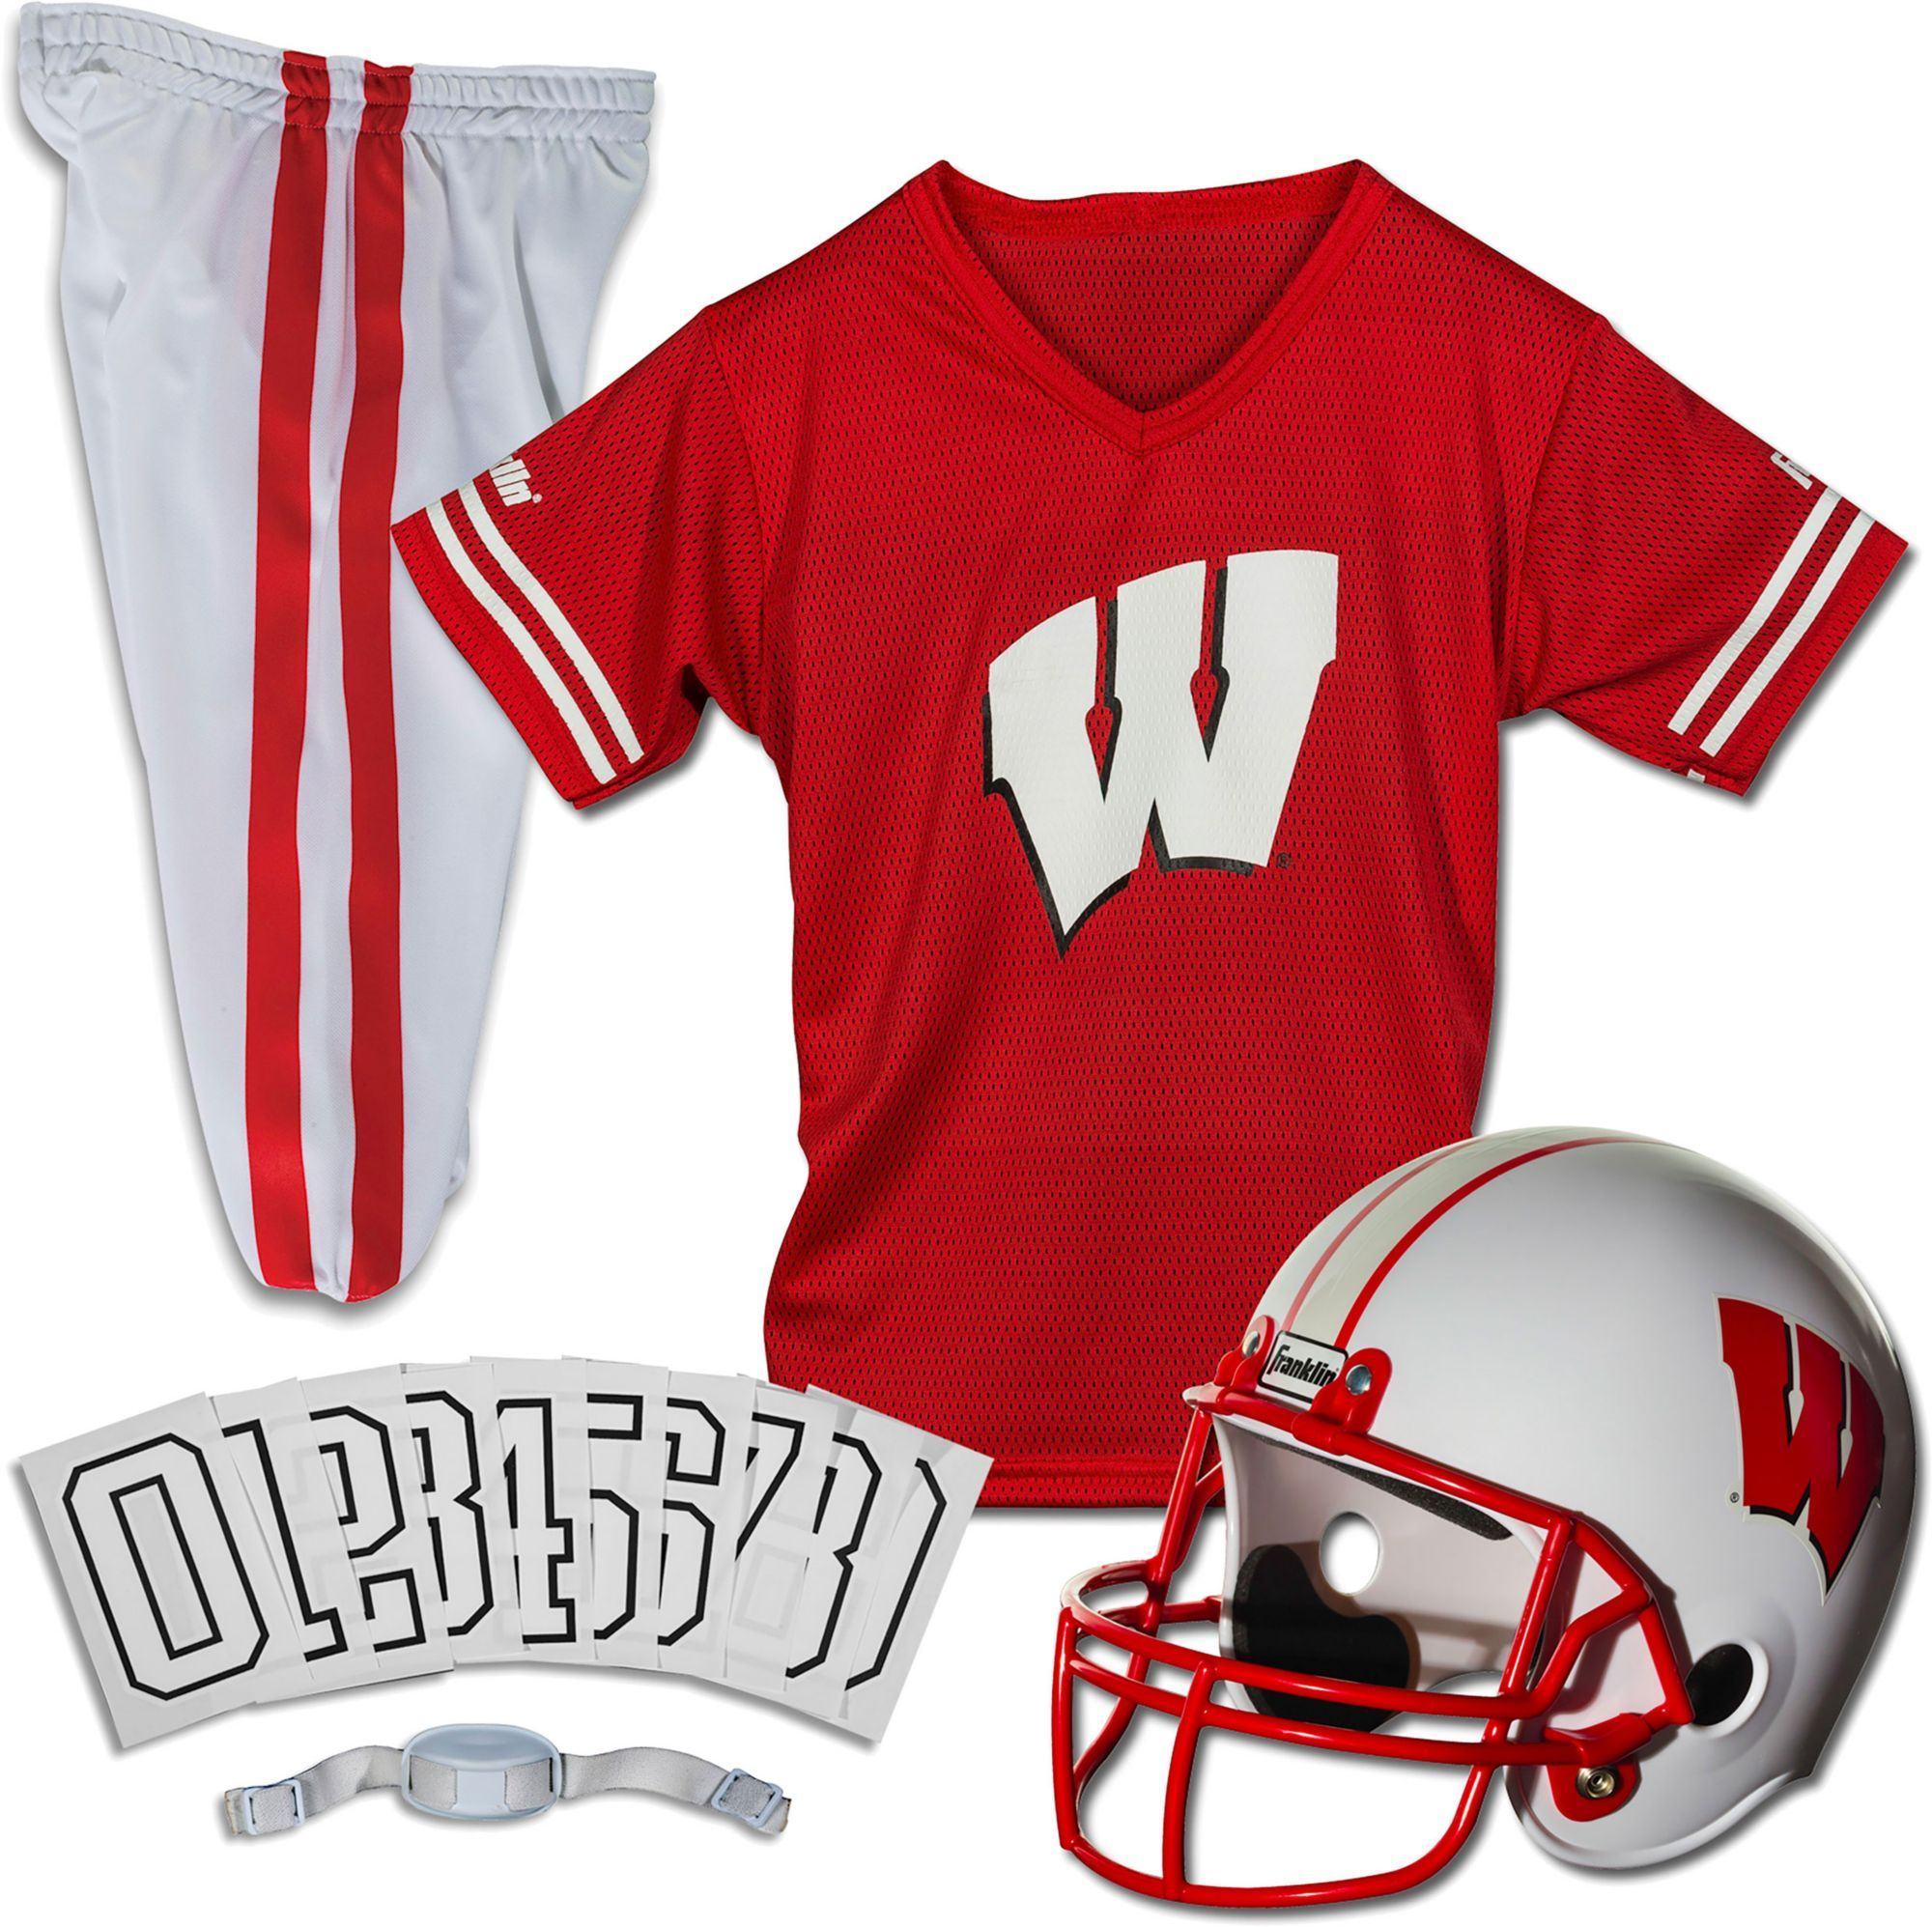 efe60f01 Franklin Wisconsin Badgers Deluxe Uniform Set | Products | Football ...